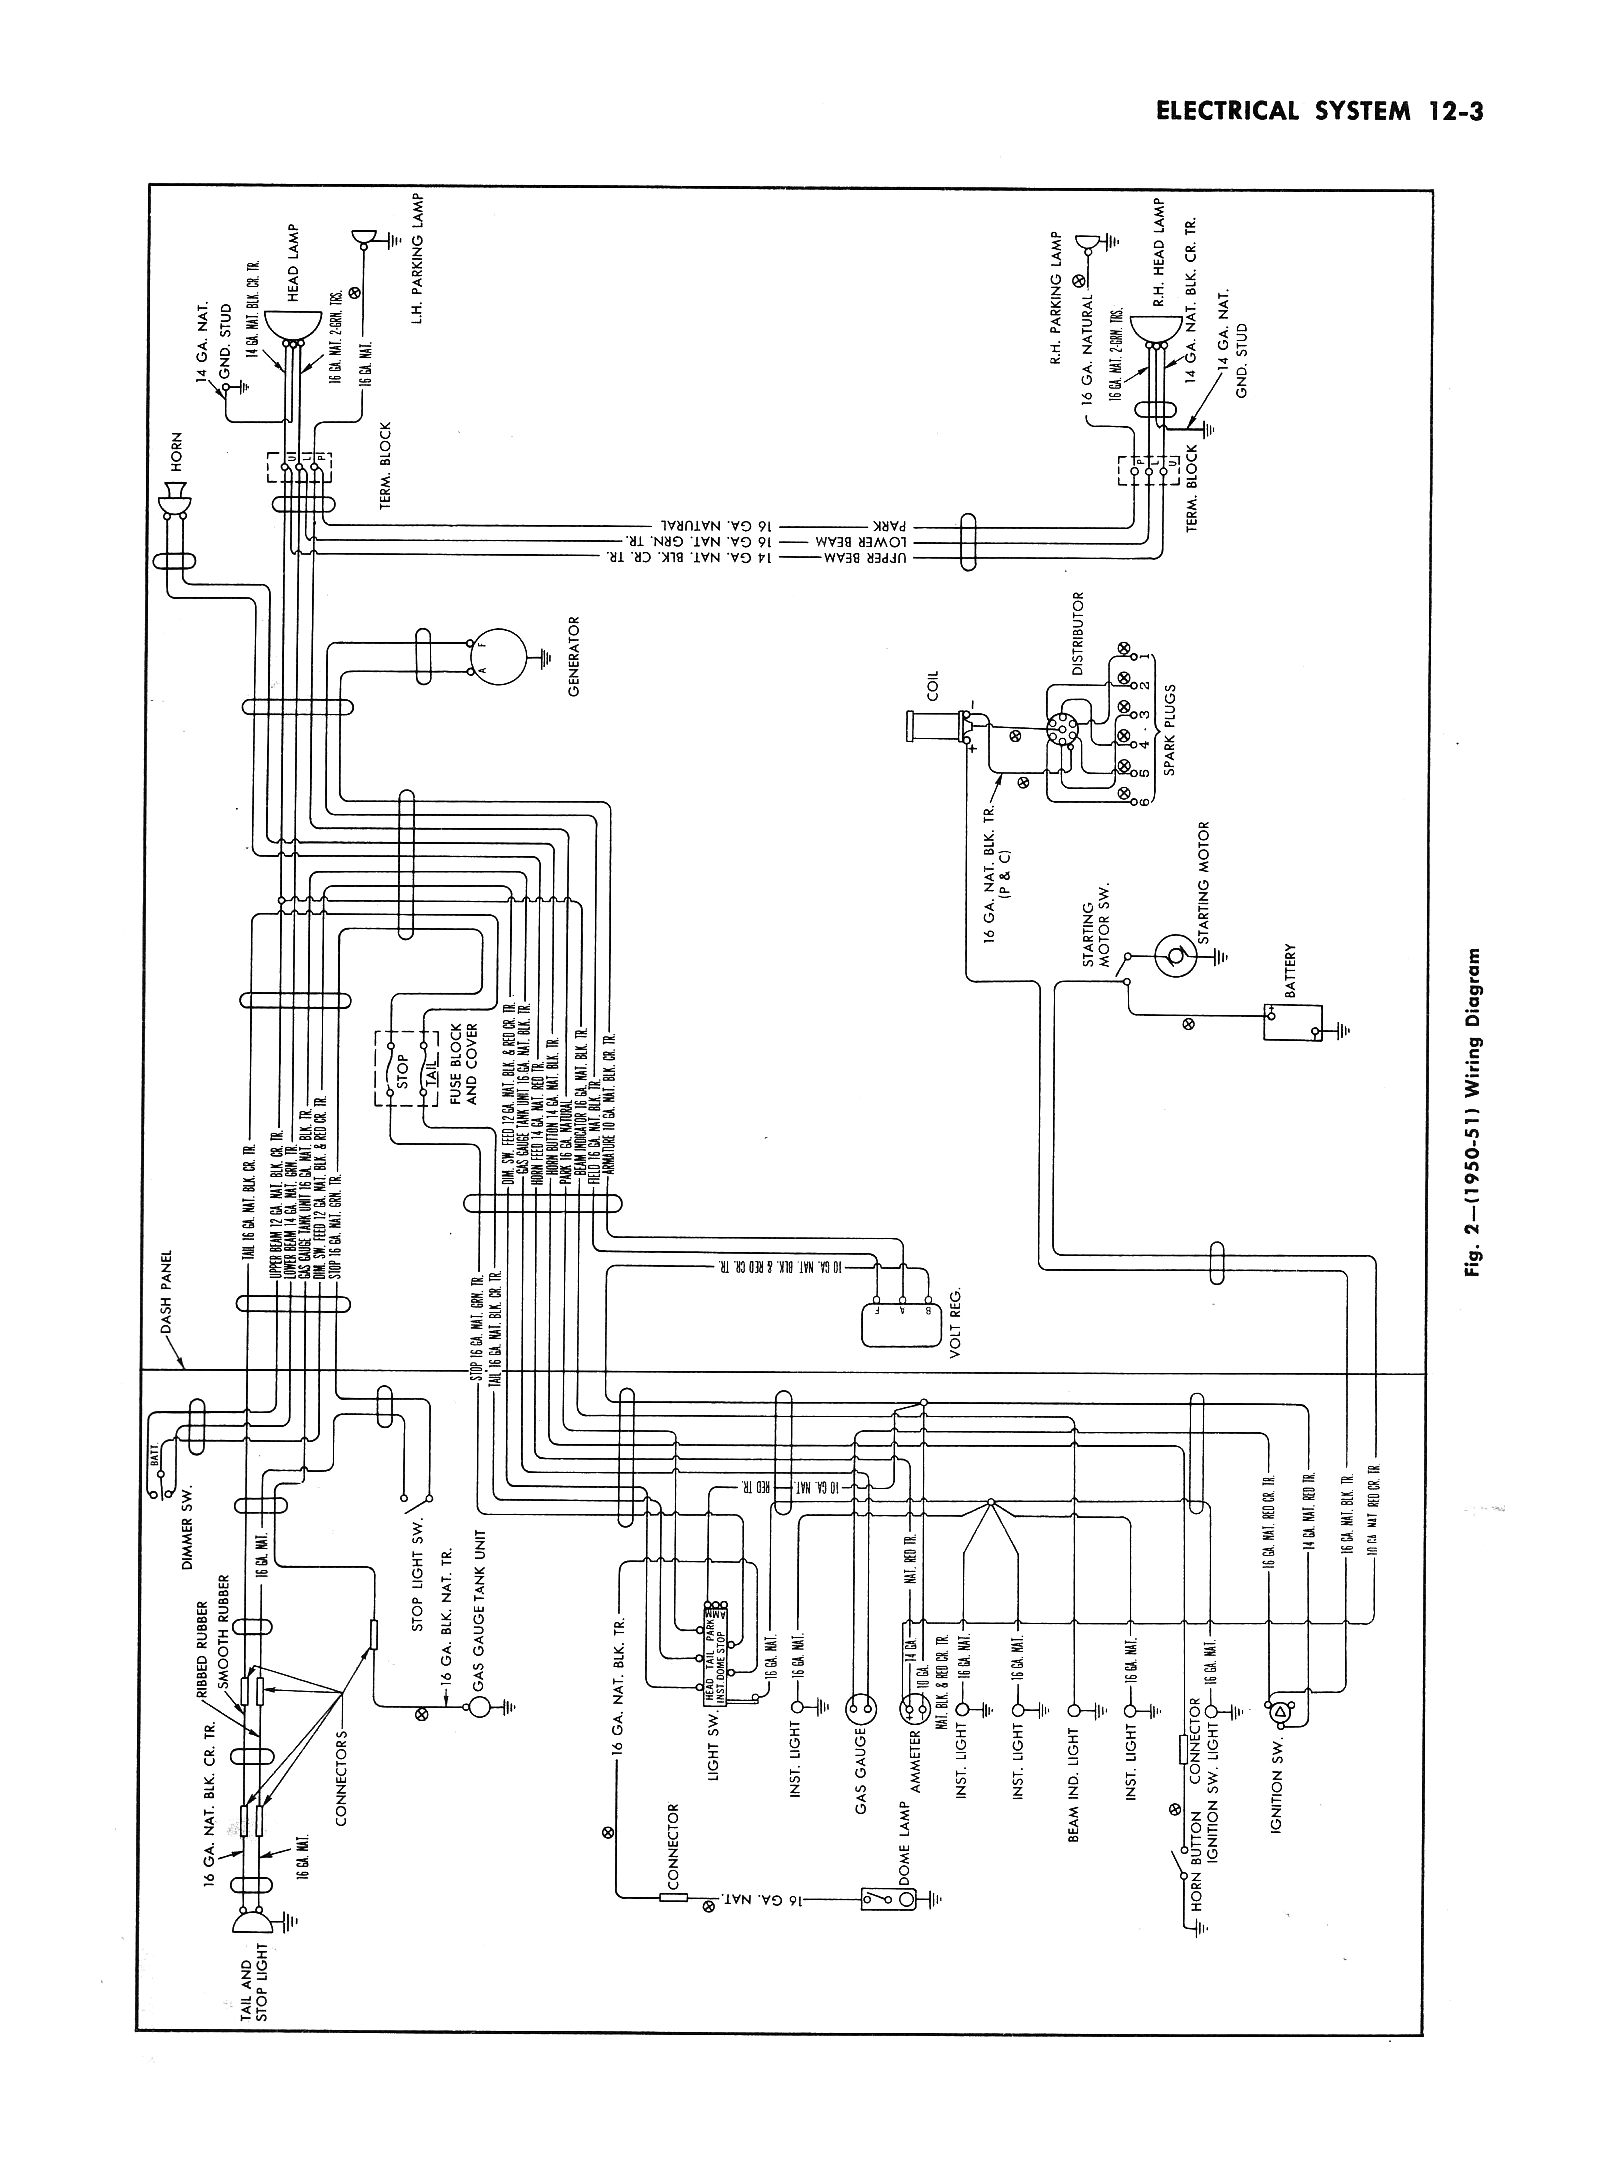 Showthread on 1979 Camaro Power Window Wiring Diagram